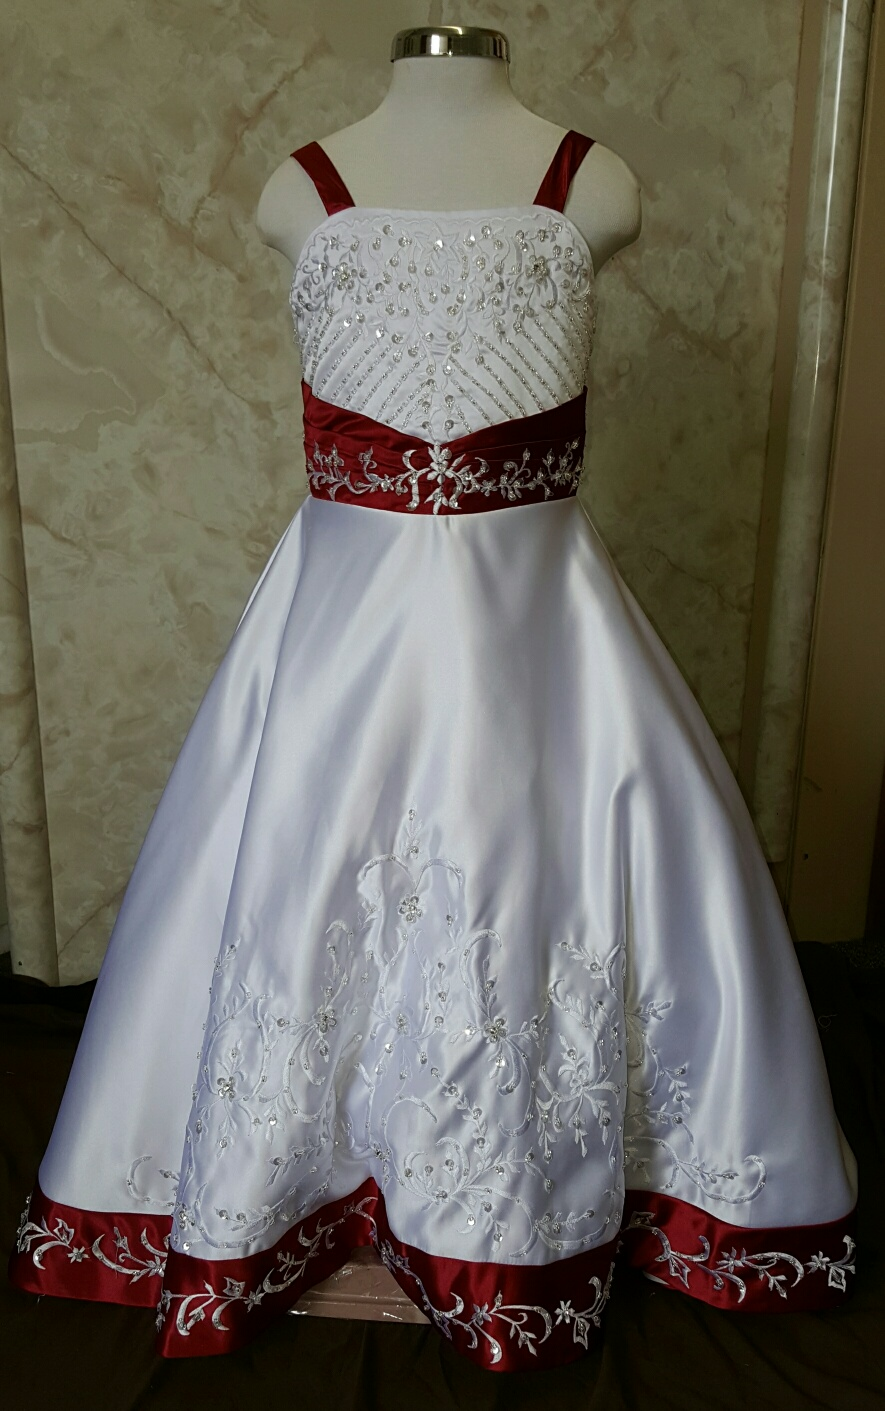 eed and white miniature wedding dress